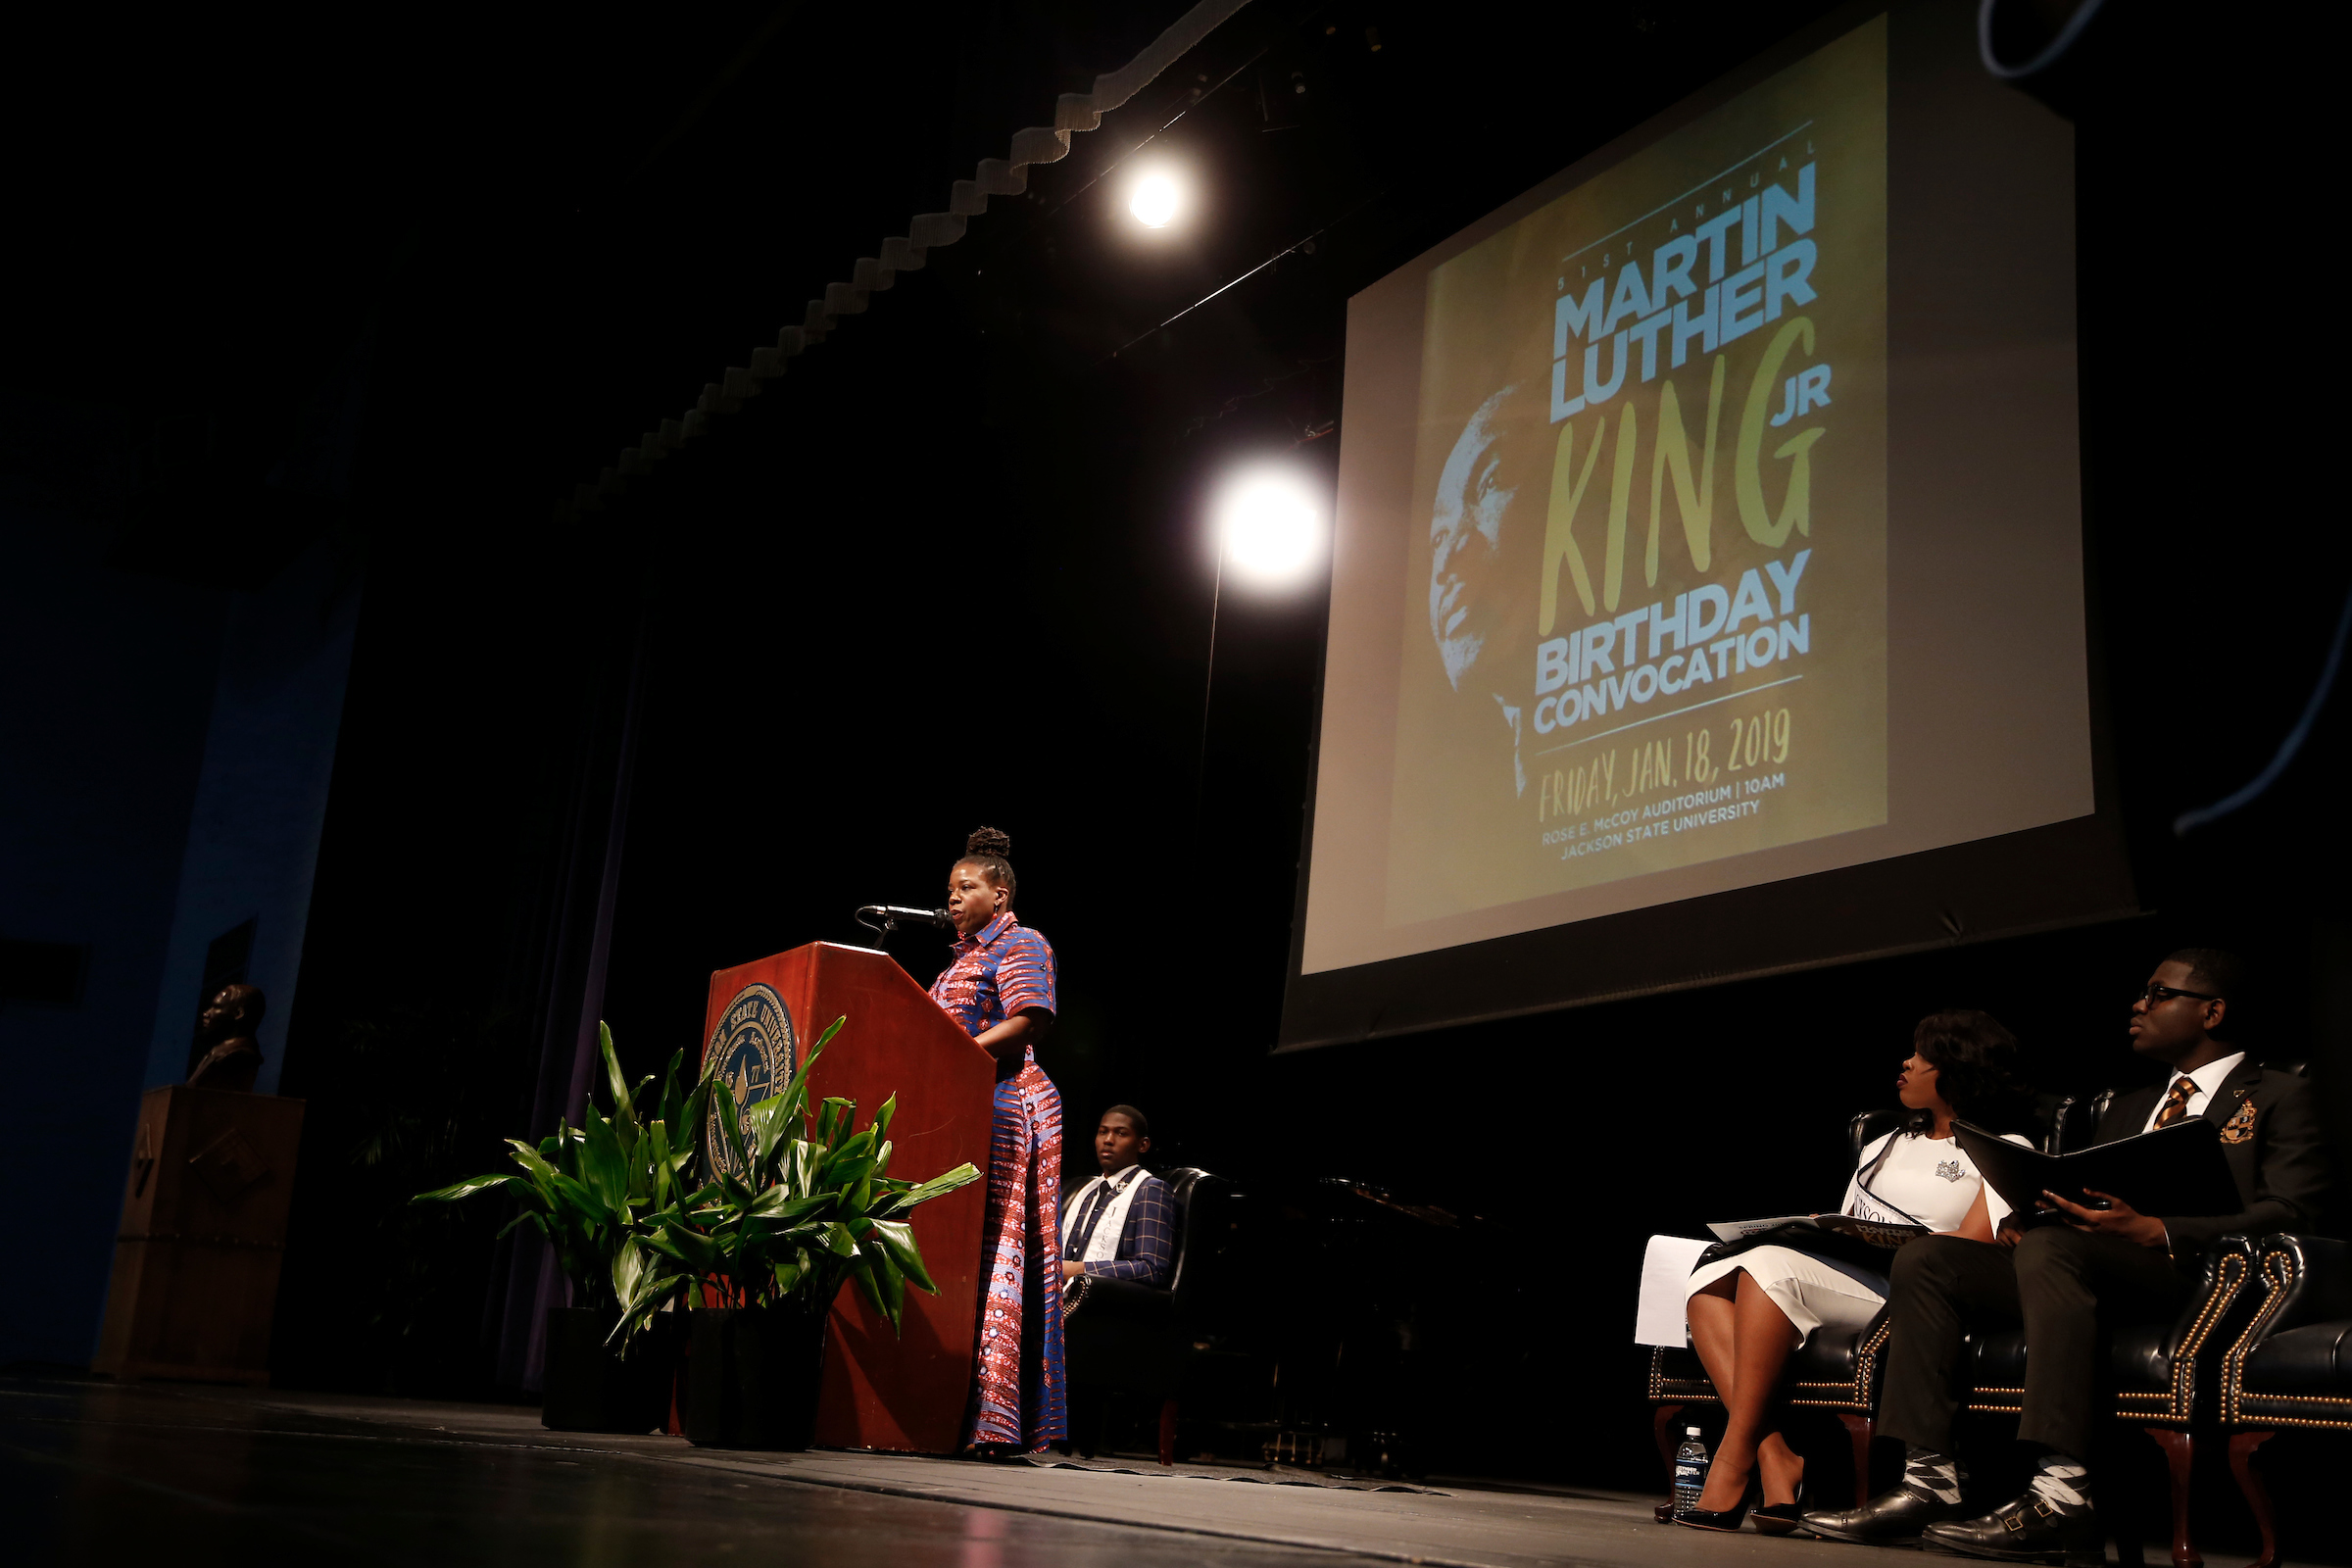 Lottie Joiner was the keynote speaker for the 51st Annual Martin Luther King Jr., Birthday Convocation hosted by the Margaret Walker Center. Joiner is the editor-in-chief of The Crisis magazine, the official publication of the NAACP, and a Washington, D.C.-based freelance writer. (Photo by Charles A. Smith/JSU)